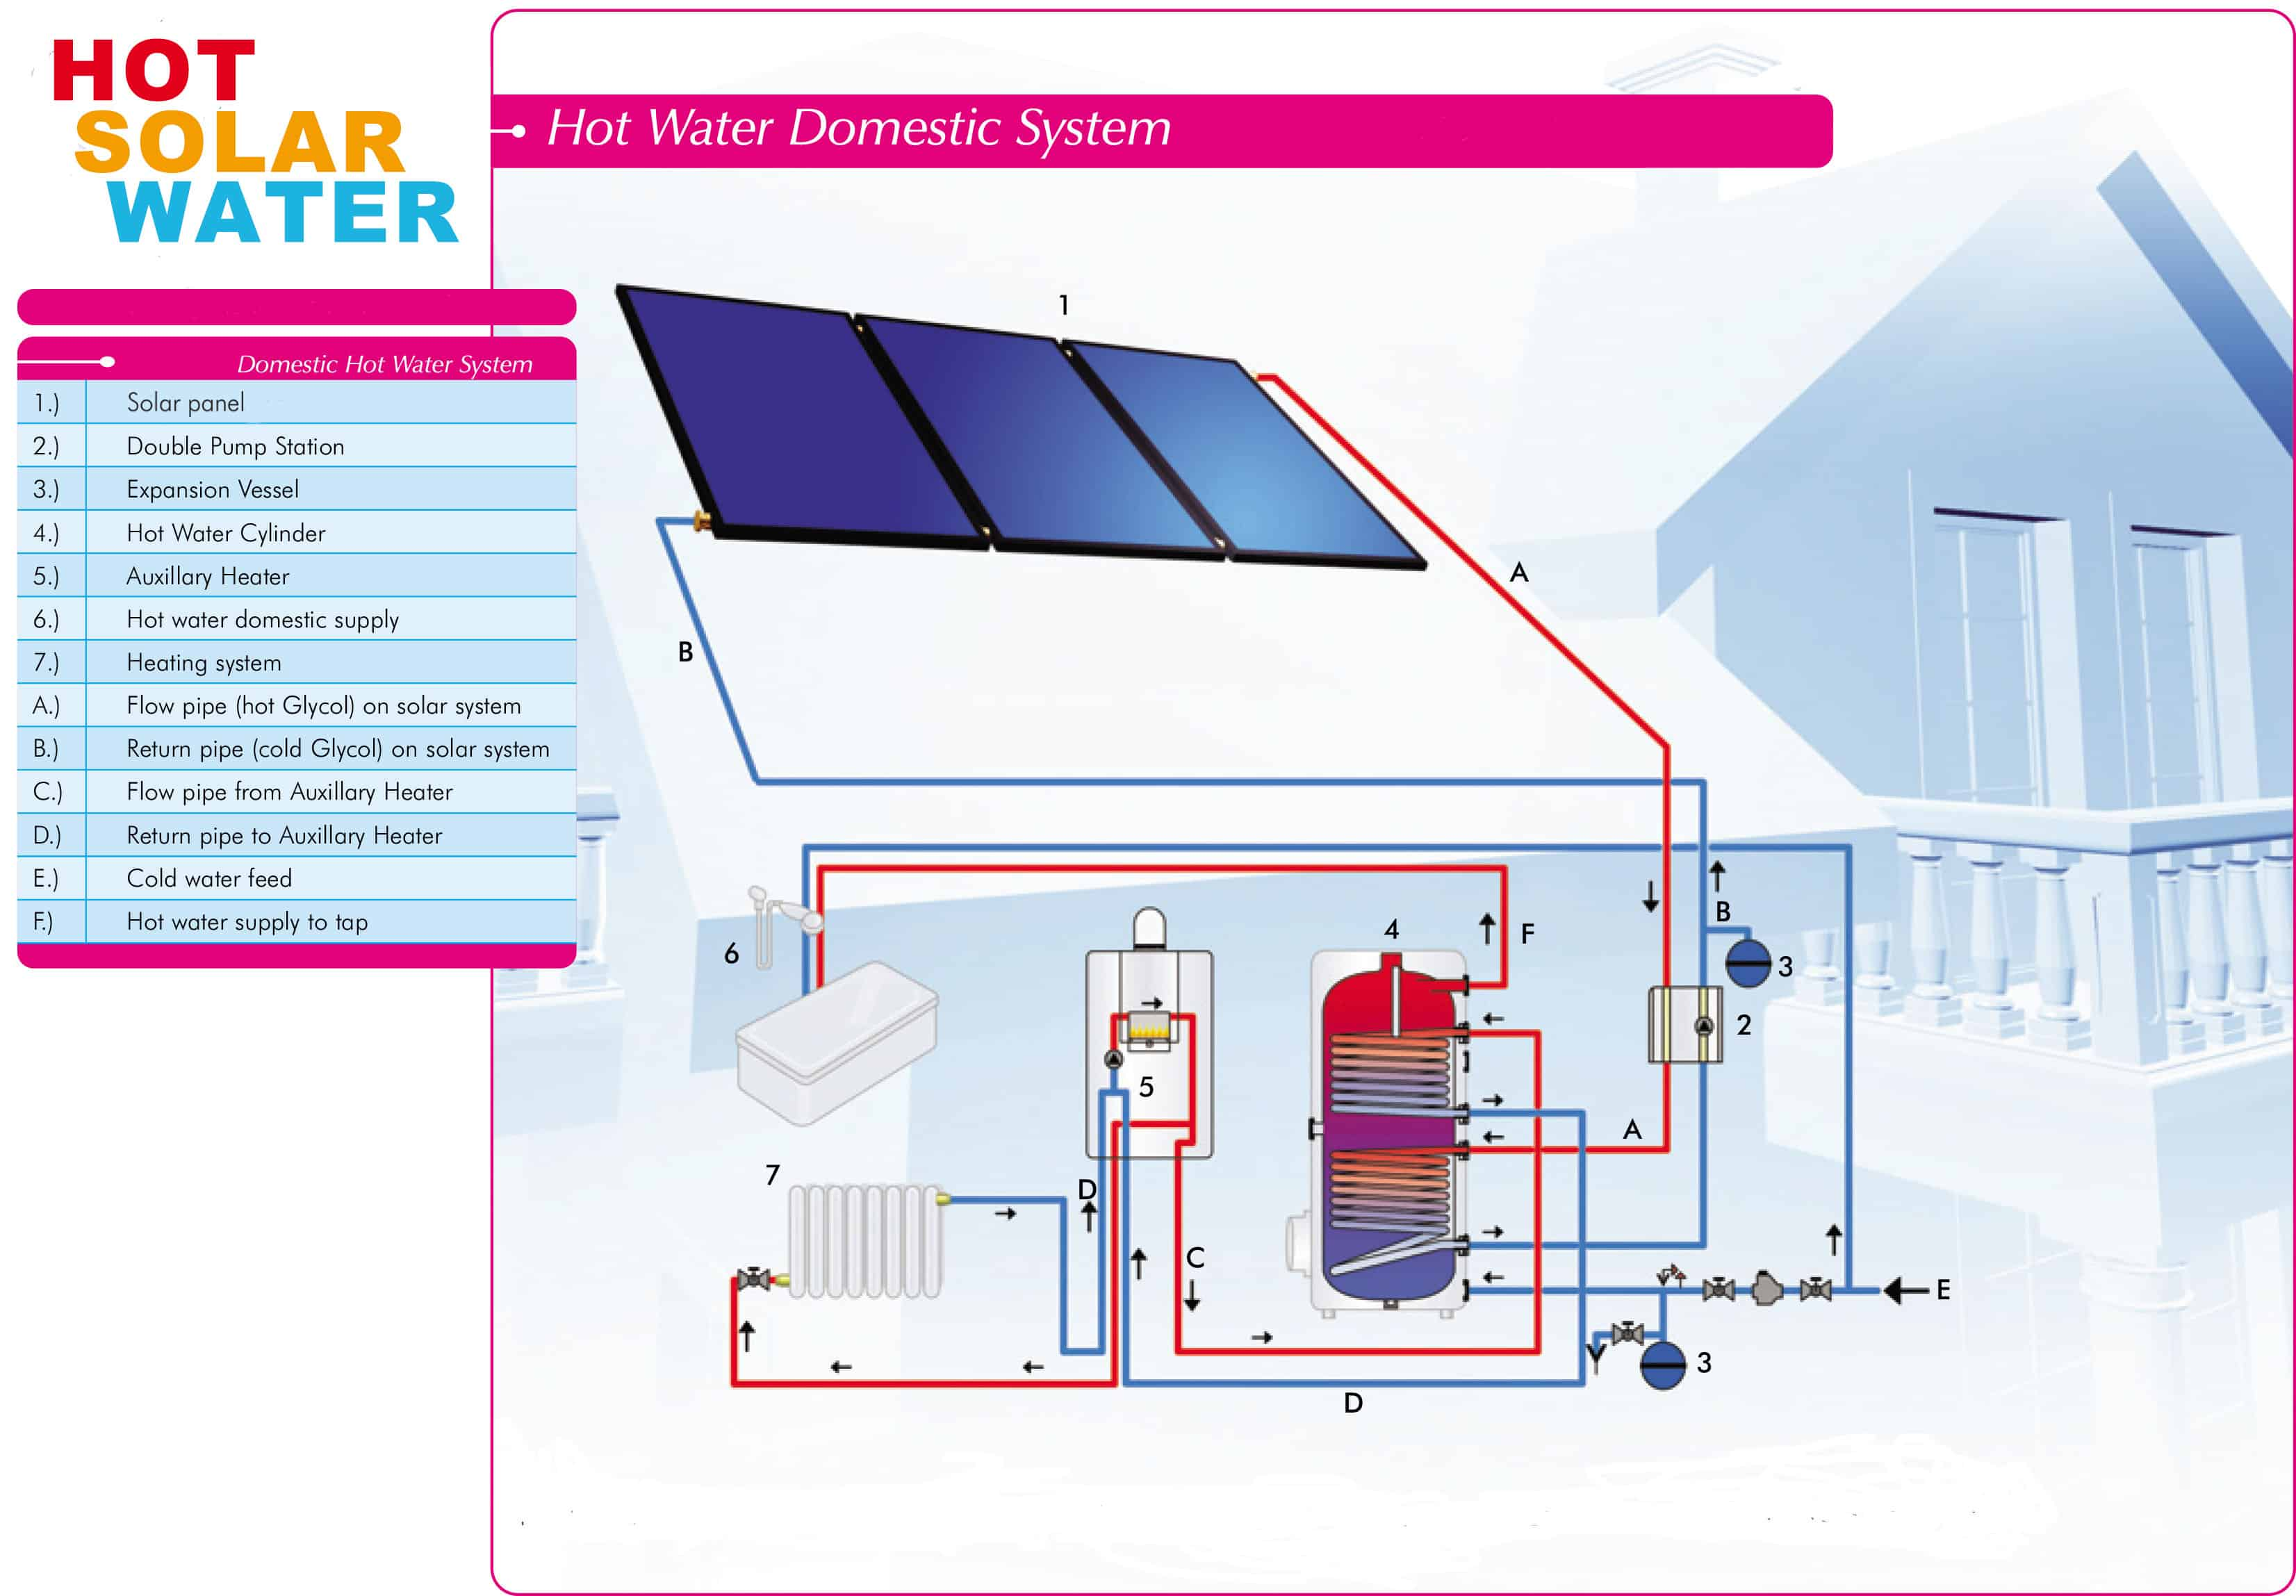 How Solar Water Heating Works Home Panels Power Pool Finally In Systems There Are Sensors The And Hot Cylinder These Feed Information About State Of System To A